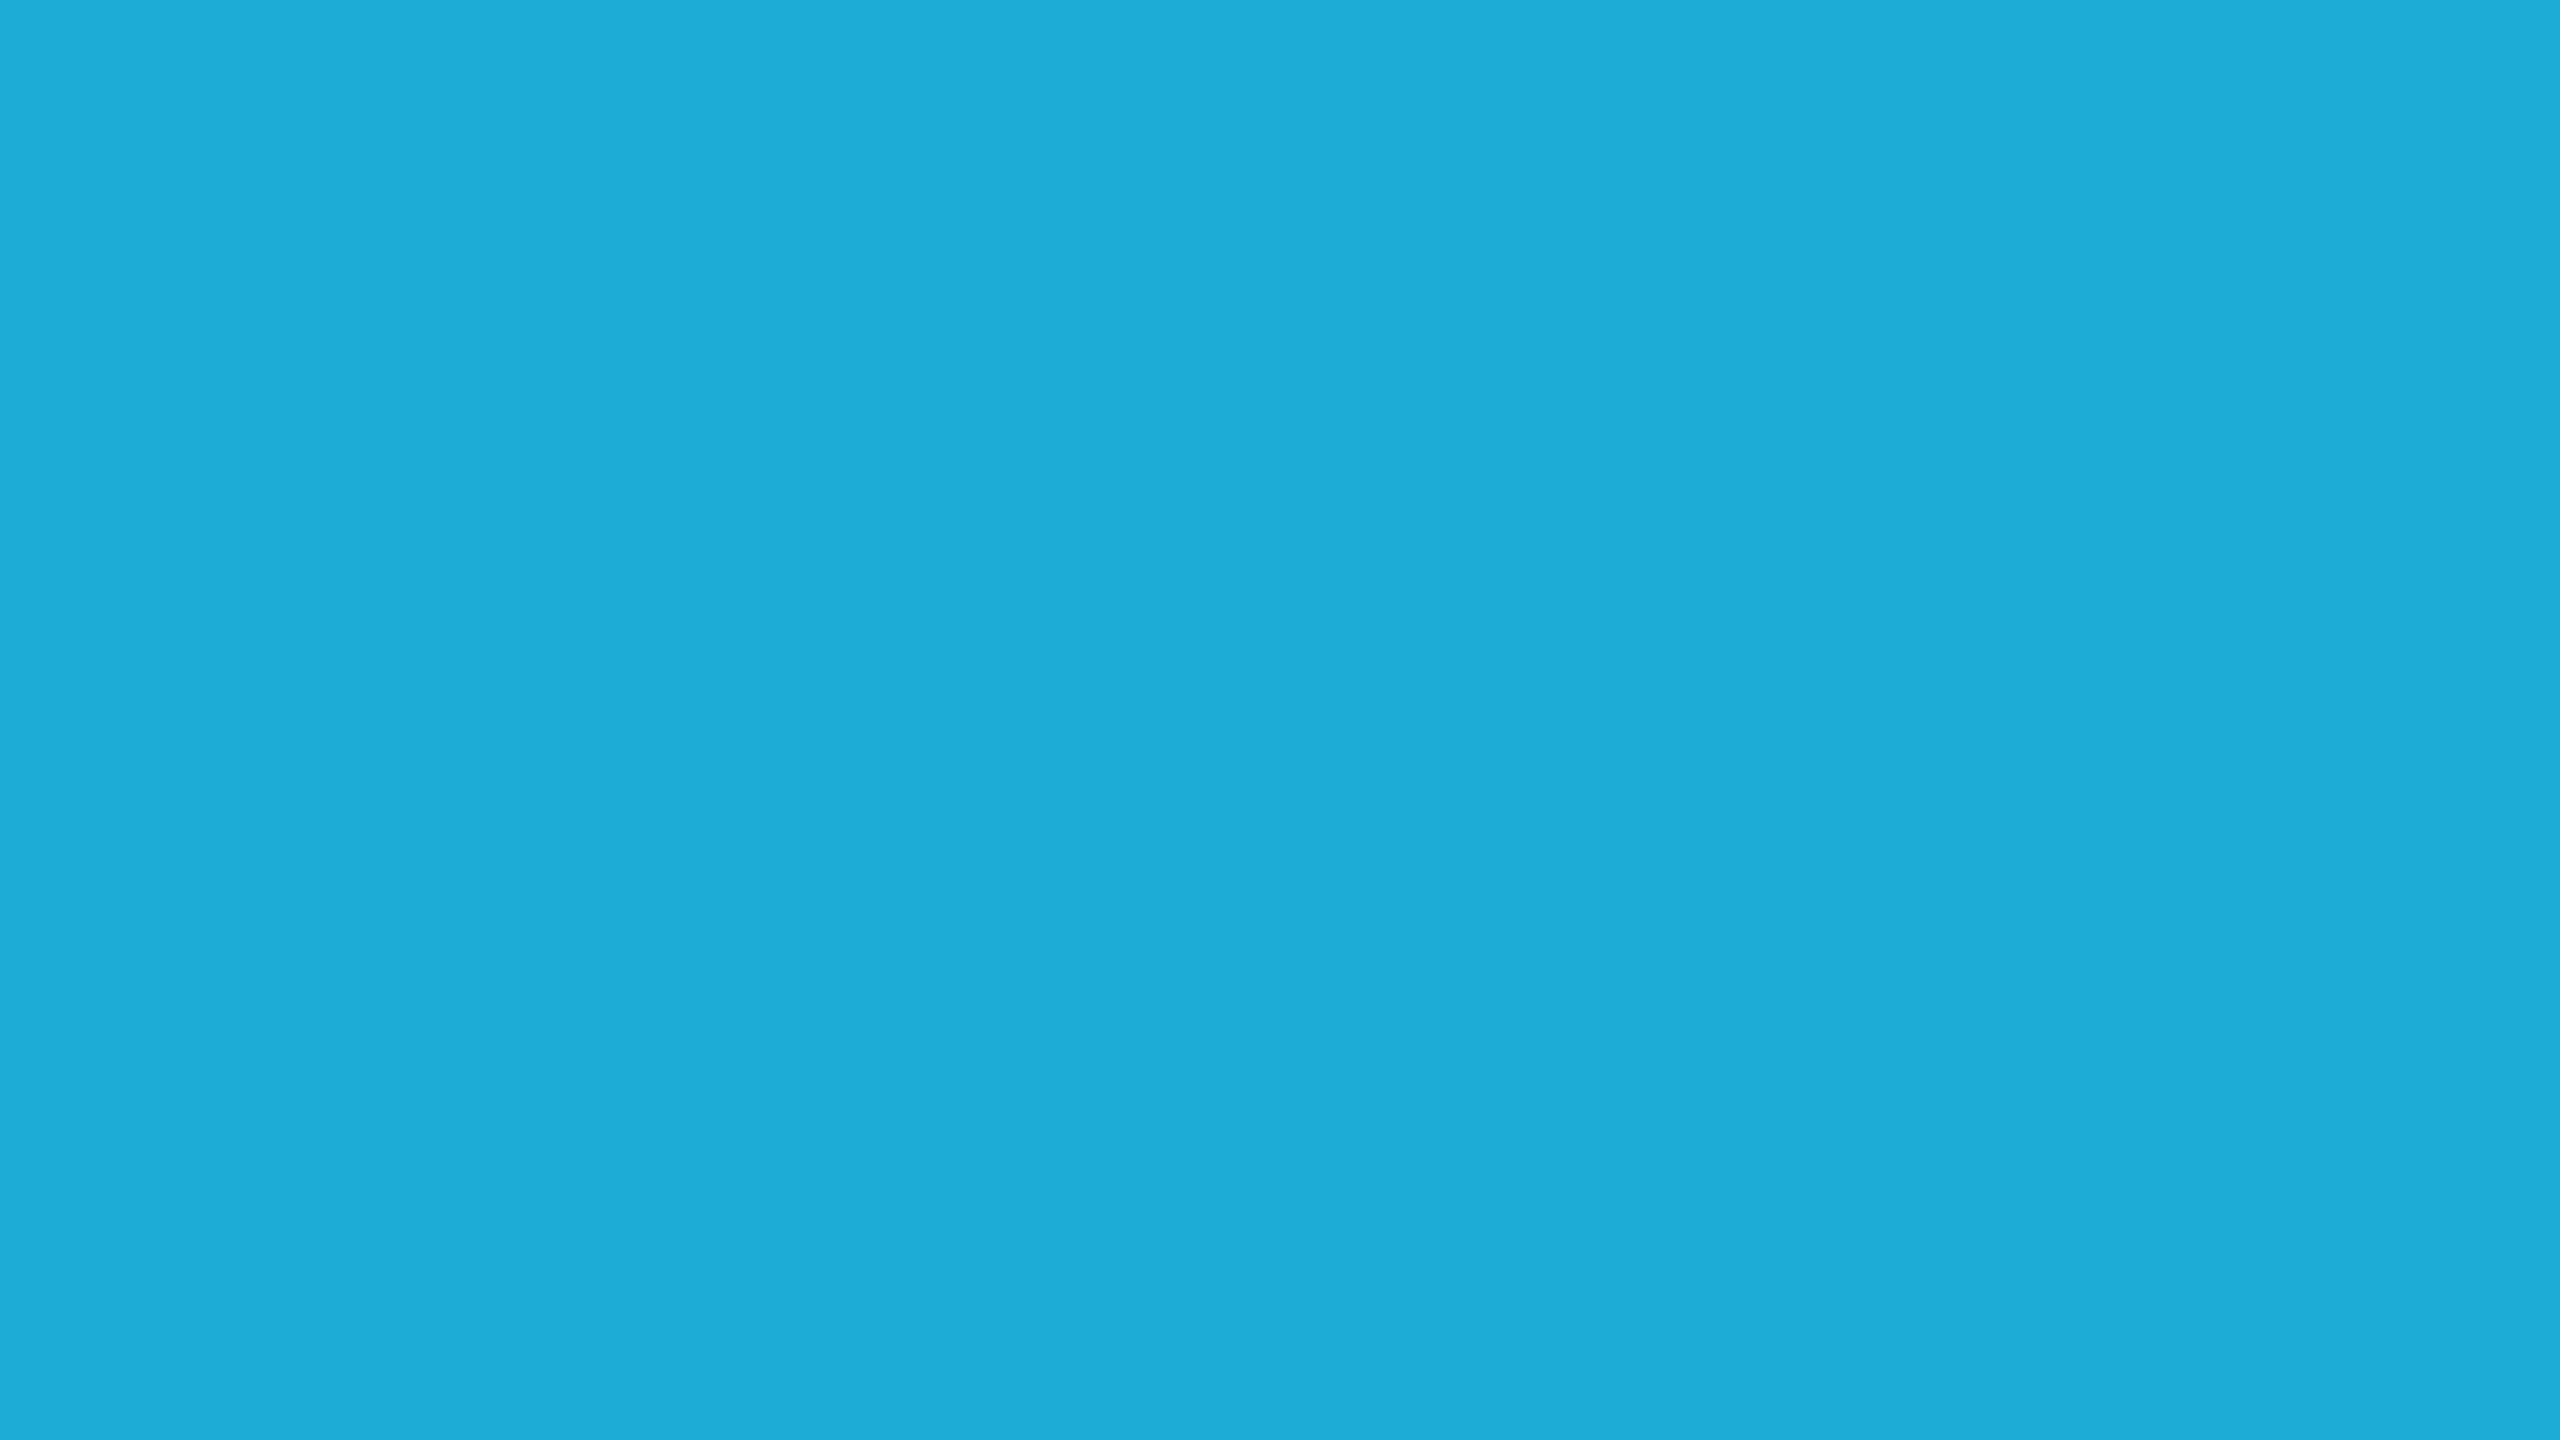 2560x1440 Bright Cerulean Solid Color Background